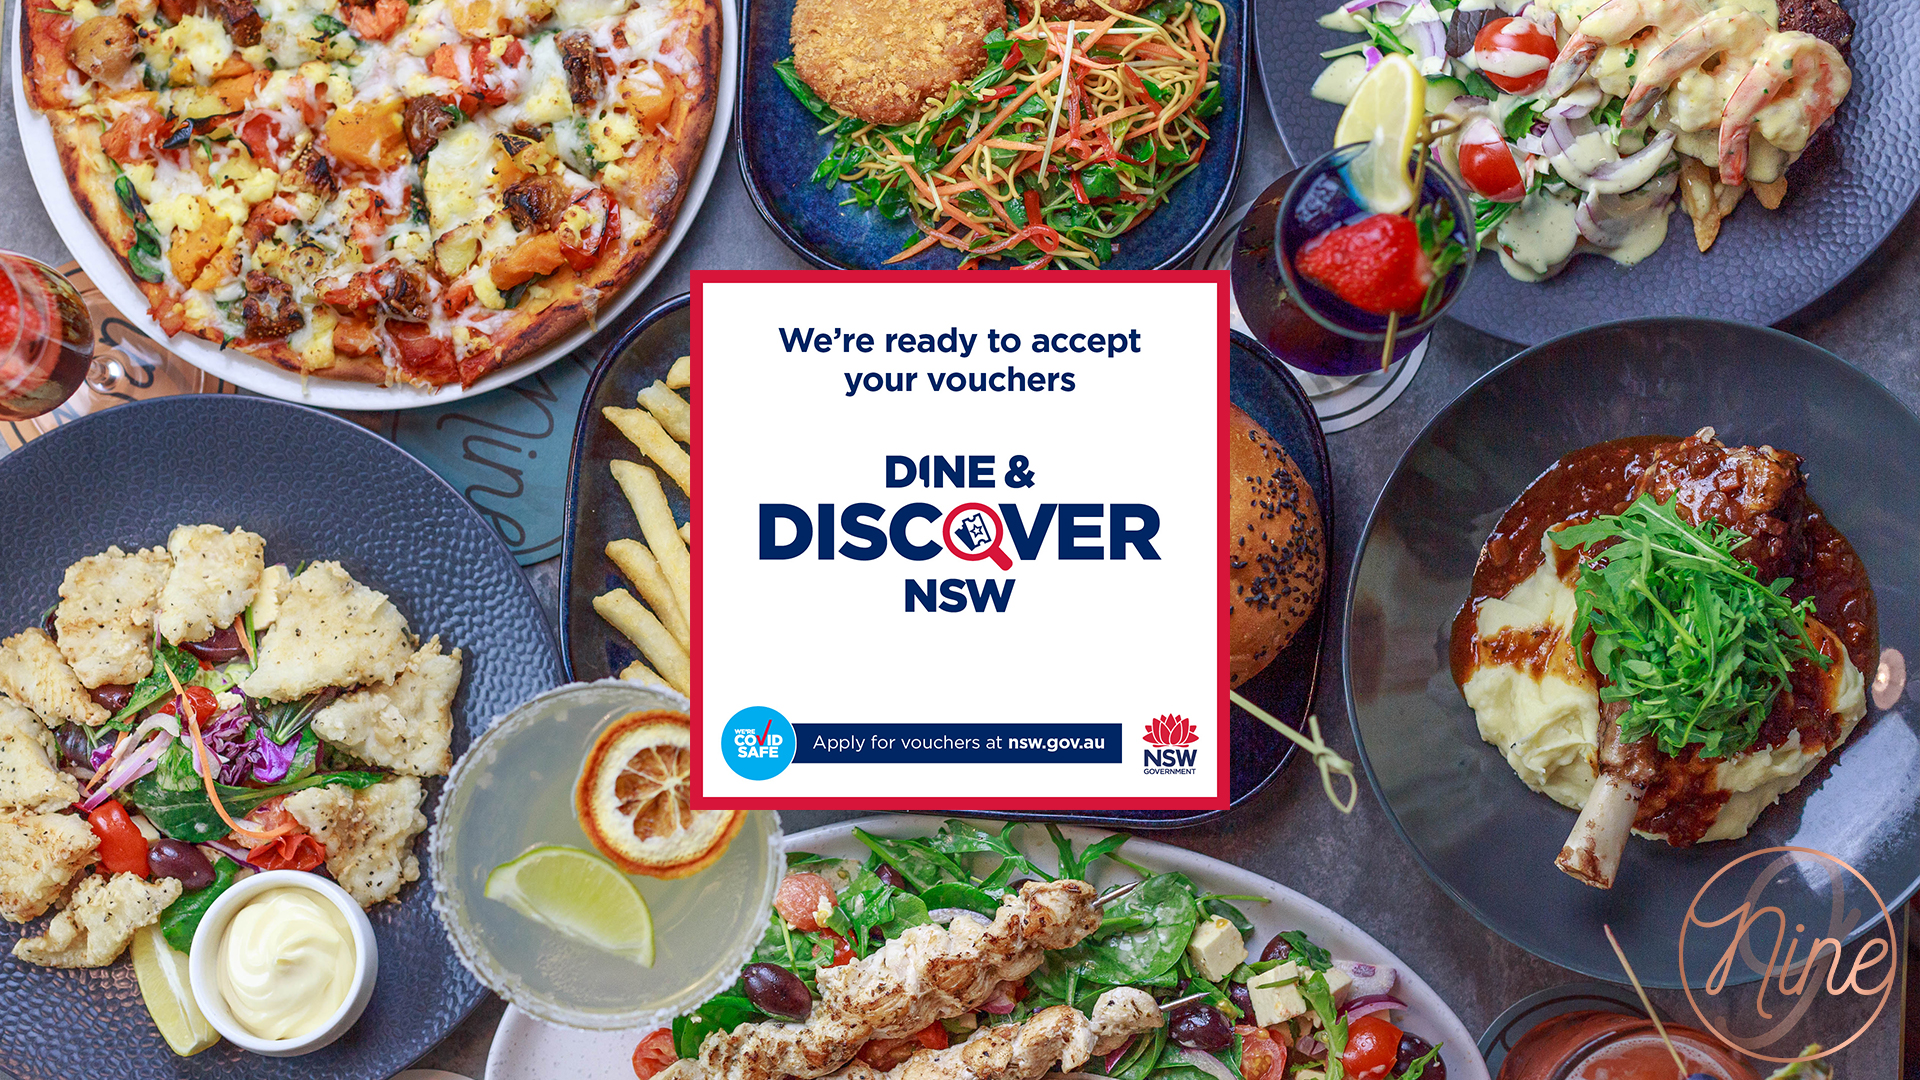 Dine and Discover Nine April 2021 New Me